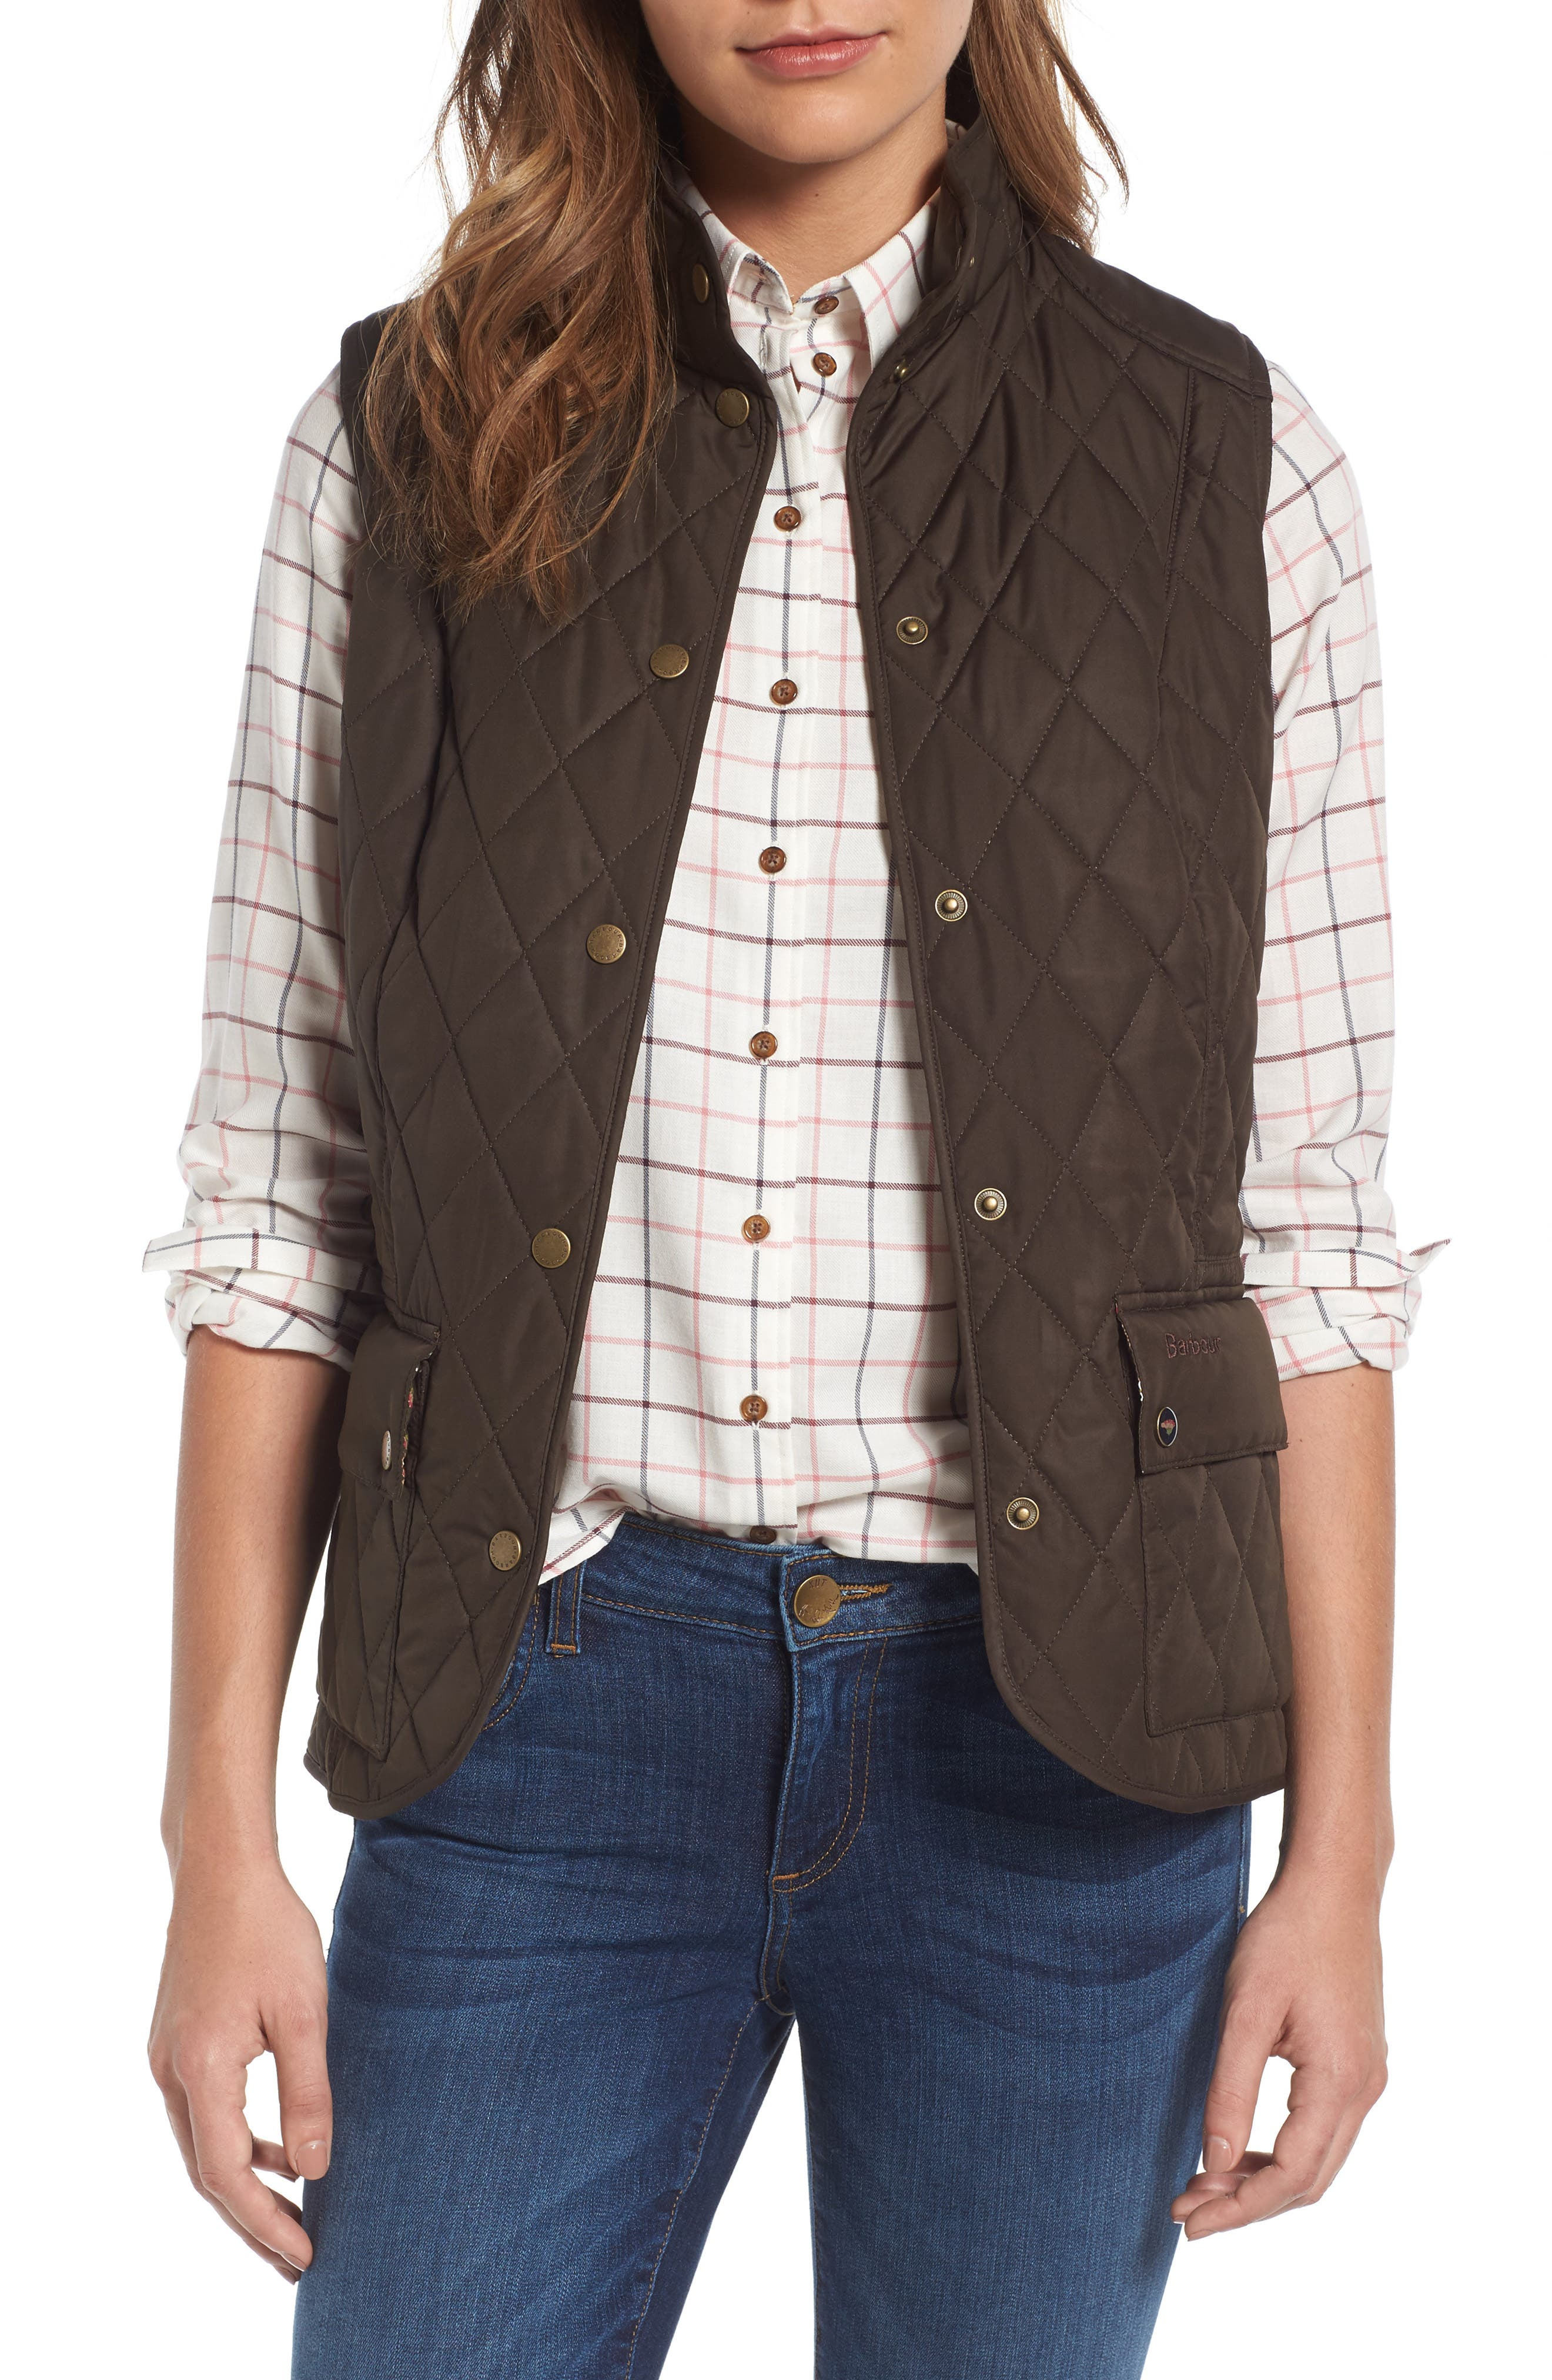 Saddleworth Quilted Vest,                             Main thumbnail 1, color,                             340